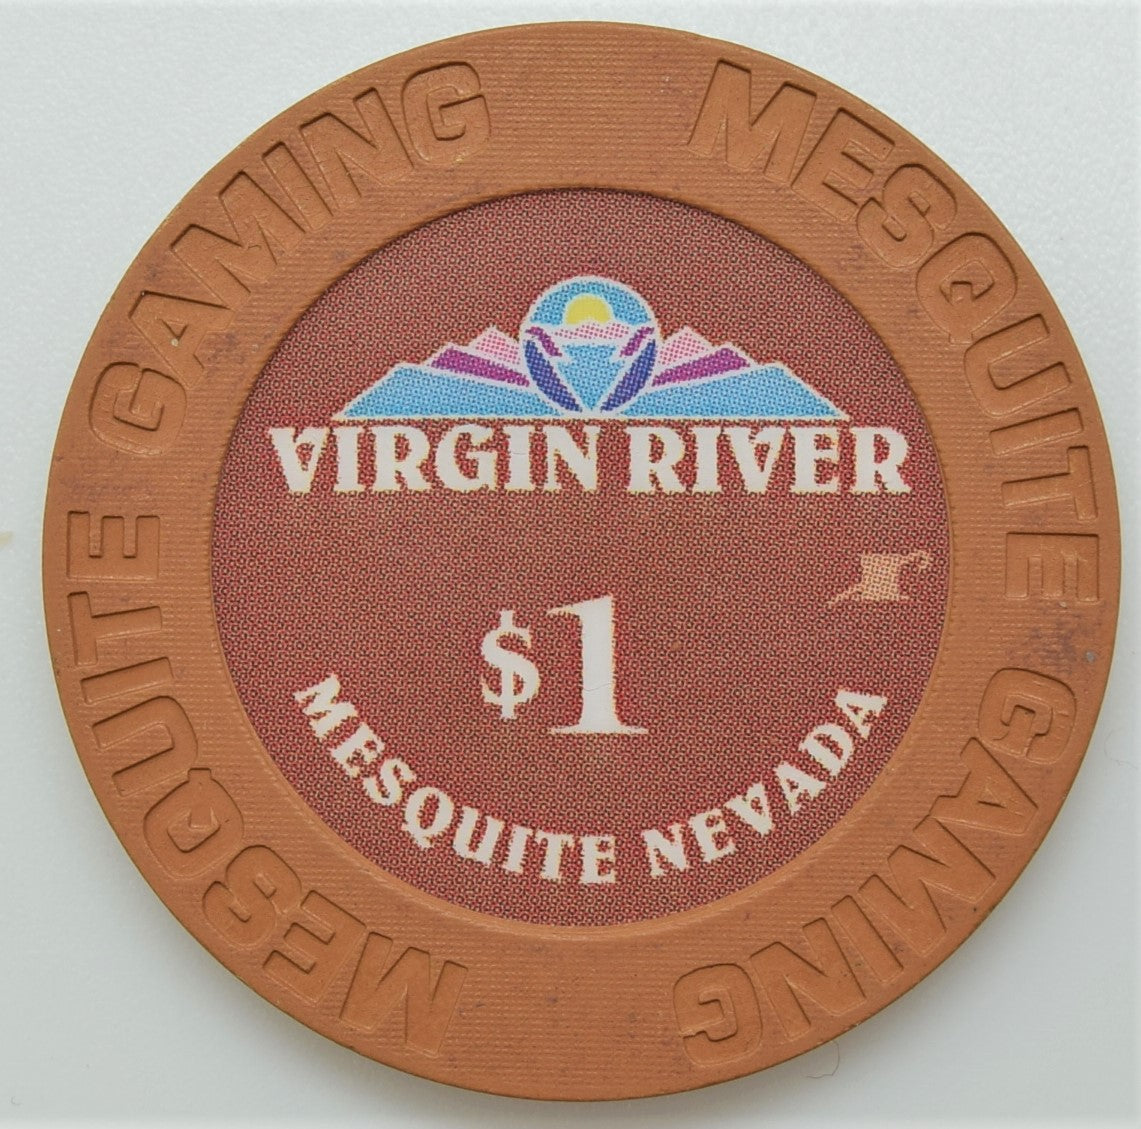 Virgin River, Mesquite NV $1 Casino Chip (#2)